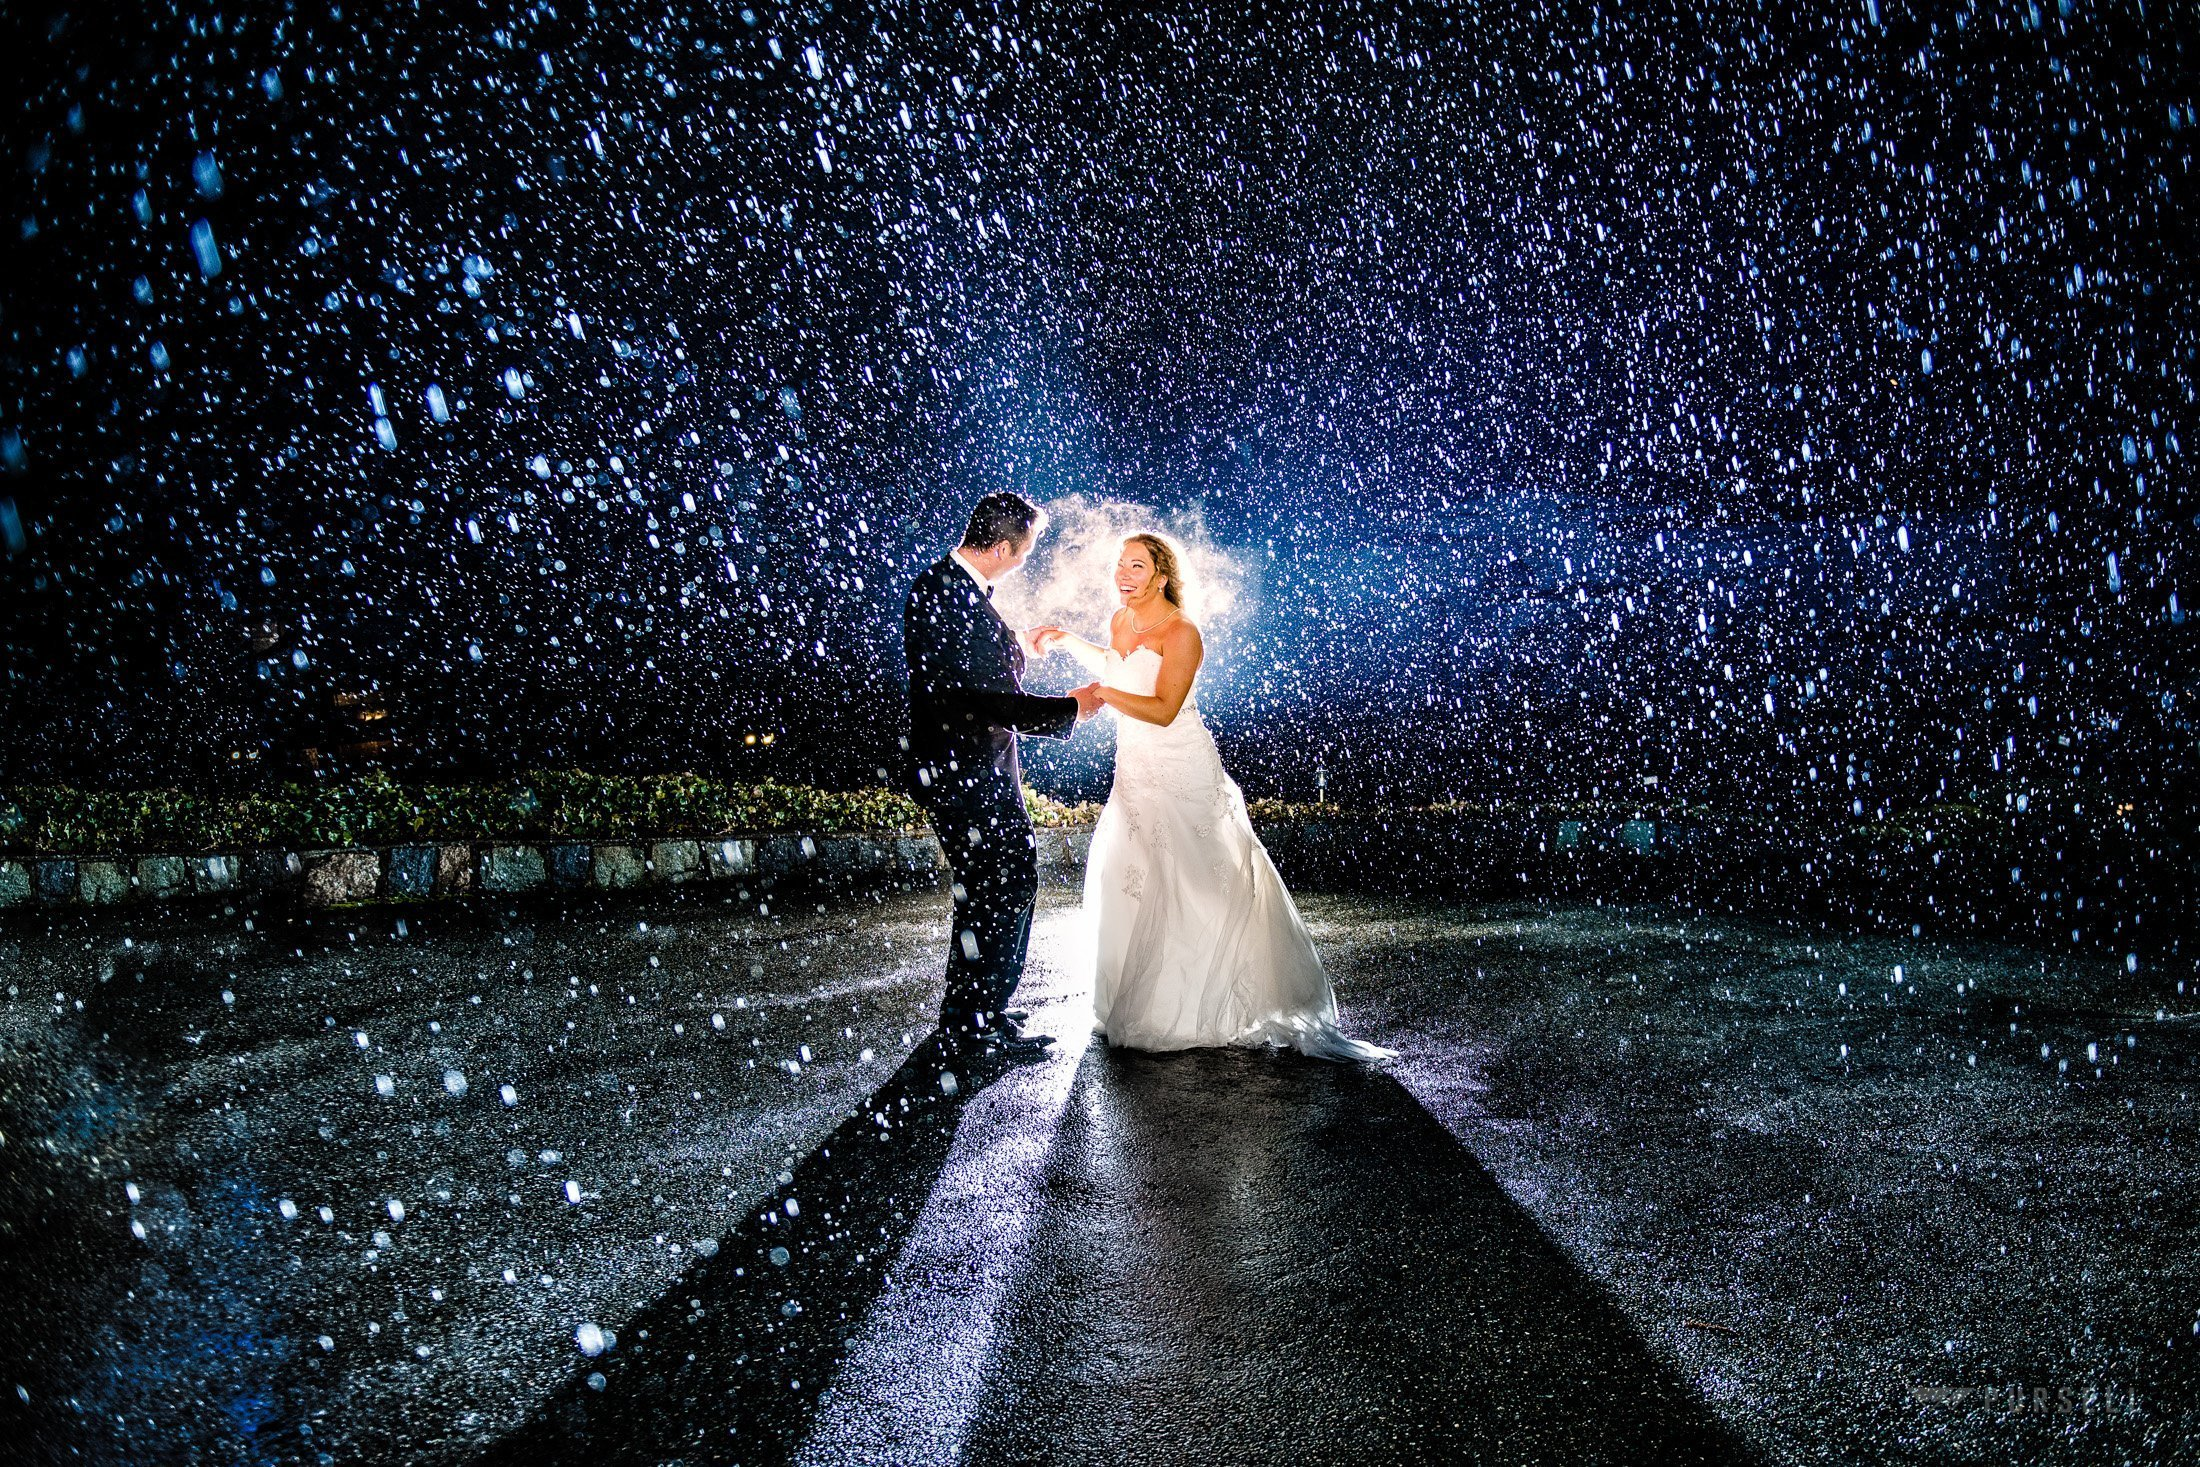 what to do if it rains on my wedding